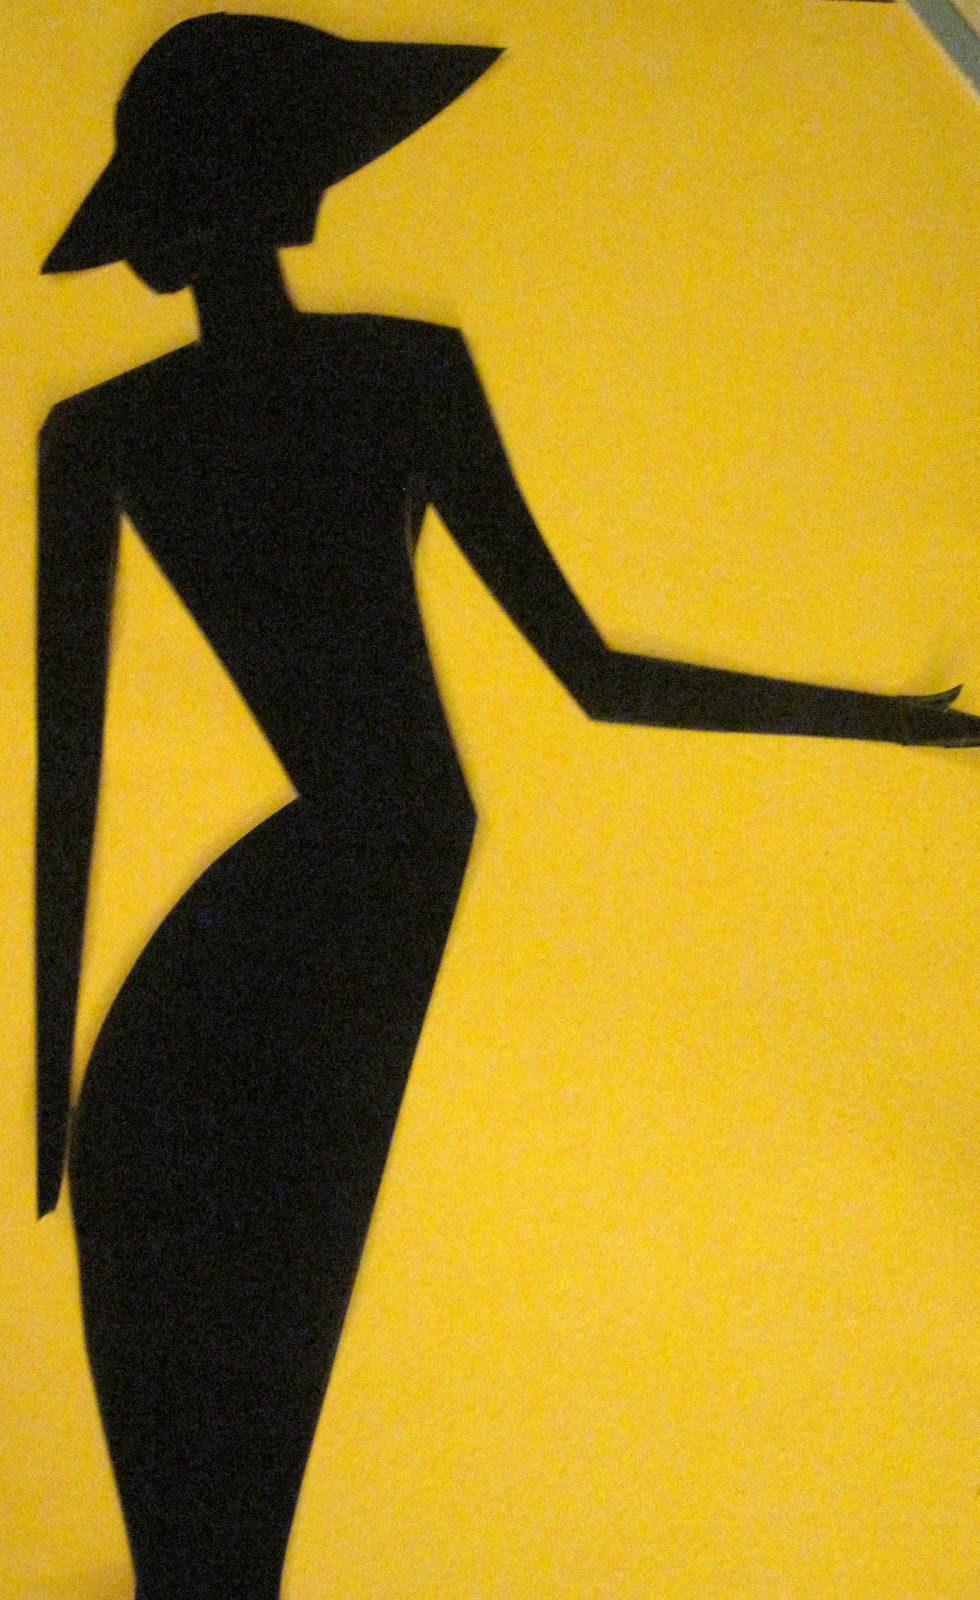 100 Paper Cuts: Day 70-Lady with a hat silhouette